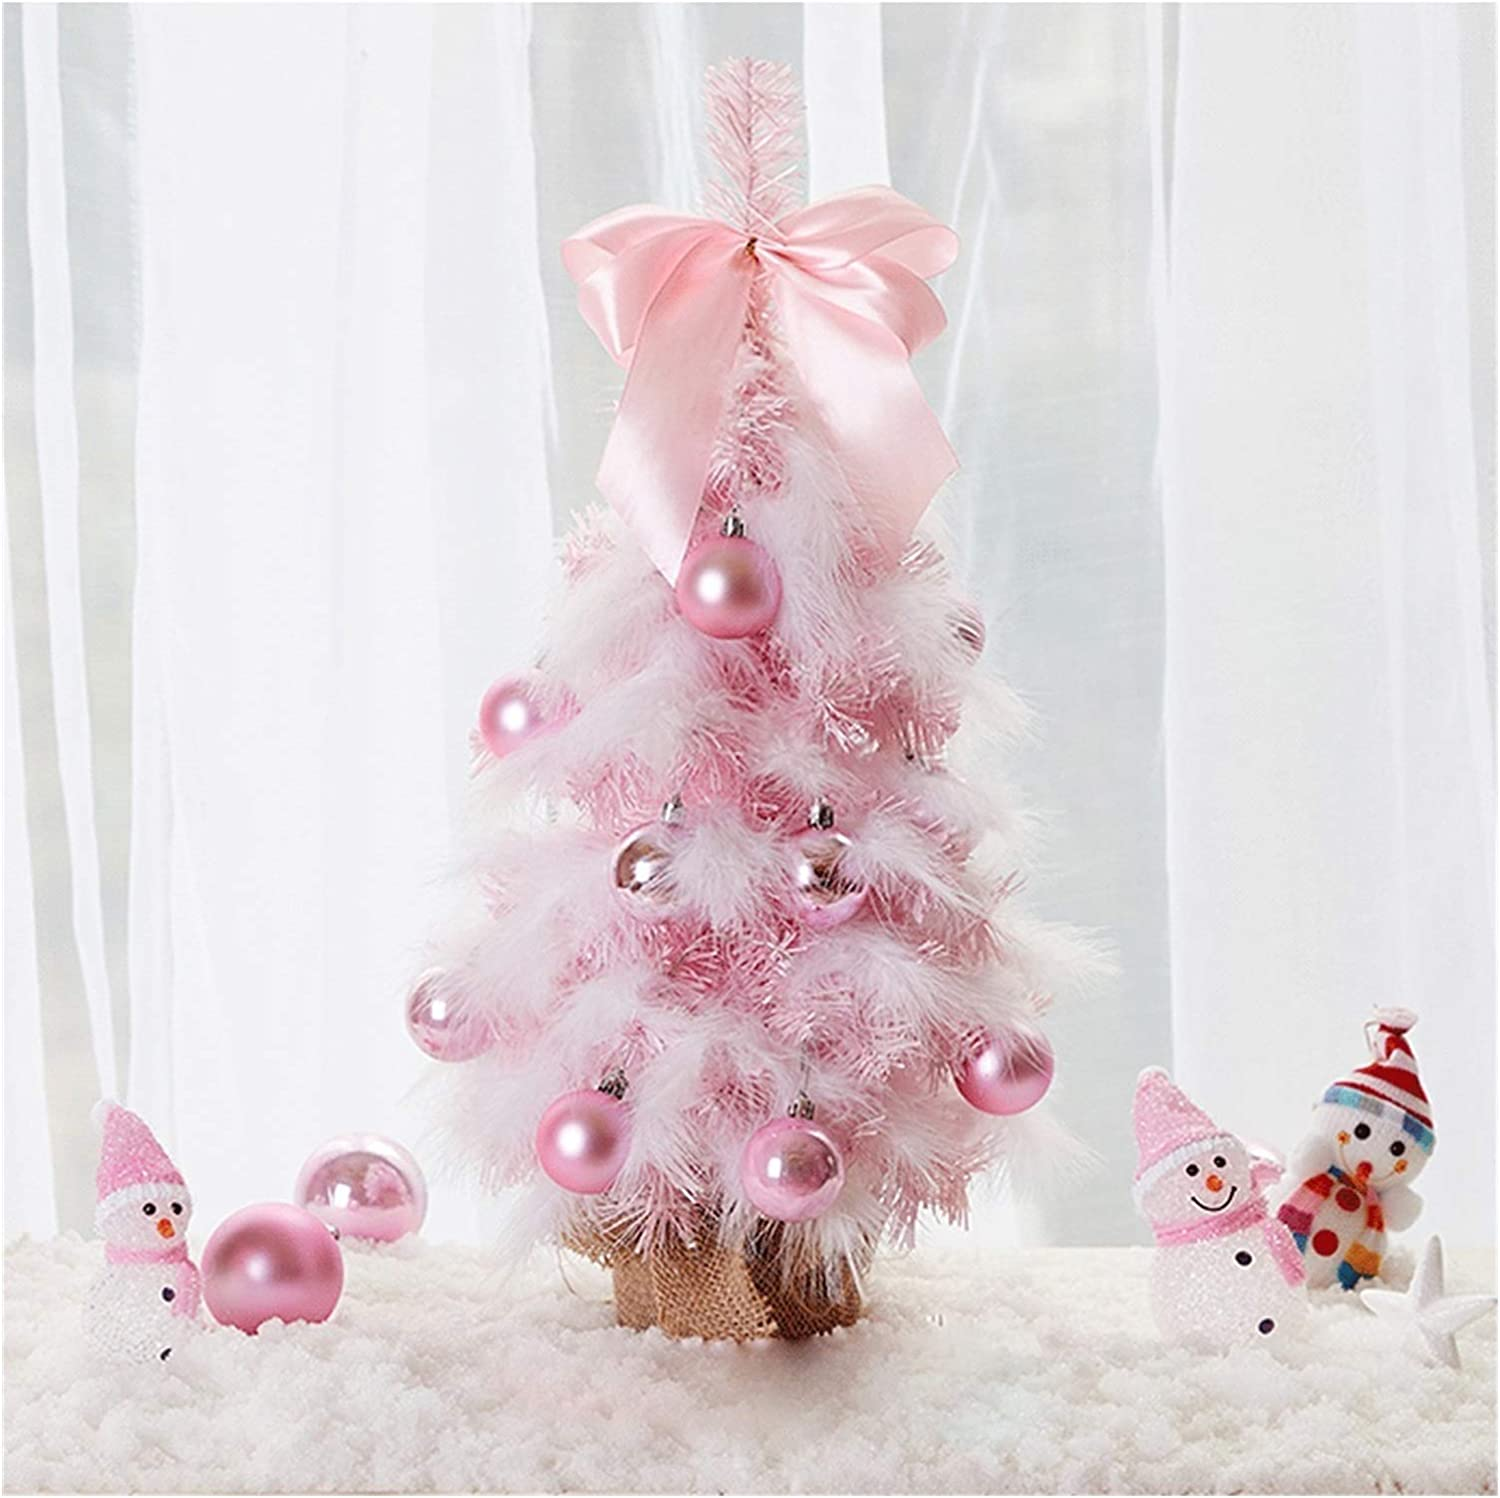 2021 autumn and winter new WPBOY Christmas Tree Pink Mini Sale price Feather Table-Top